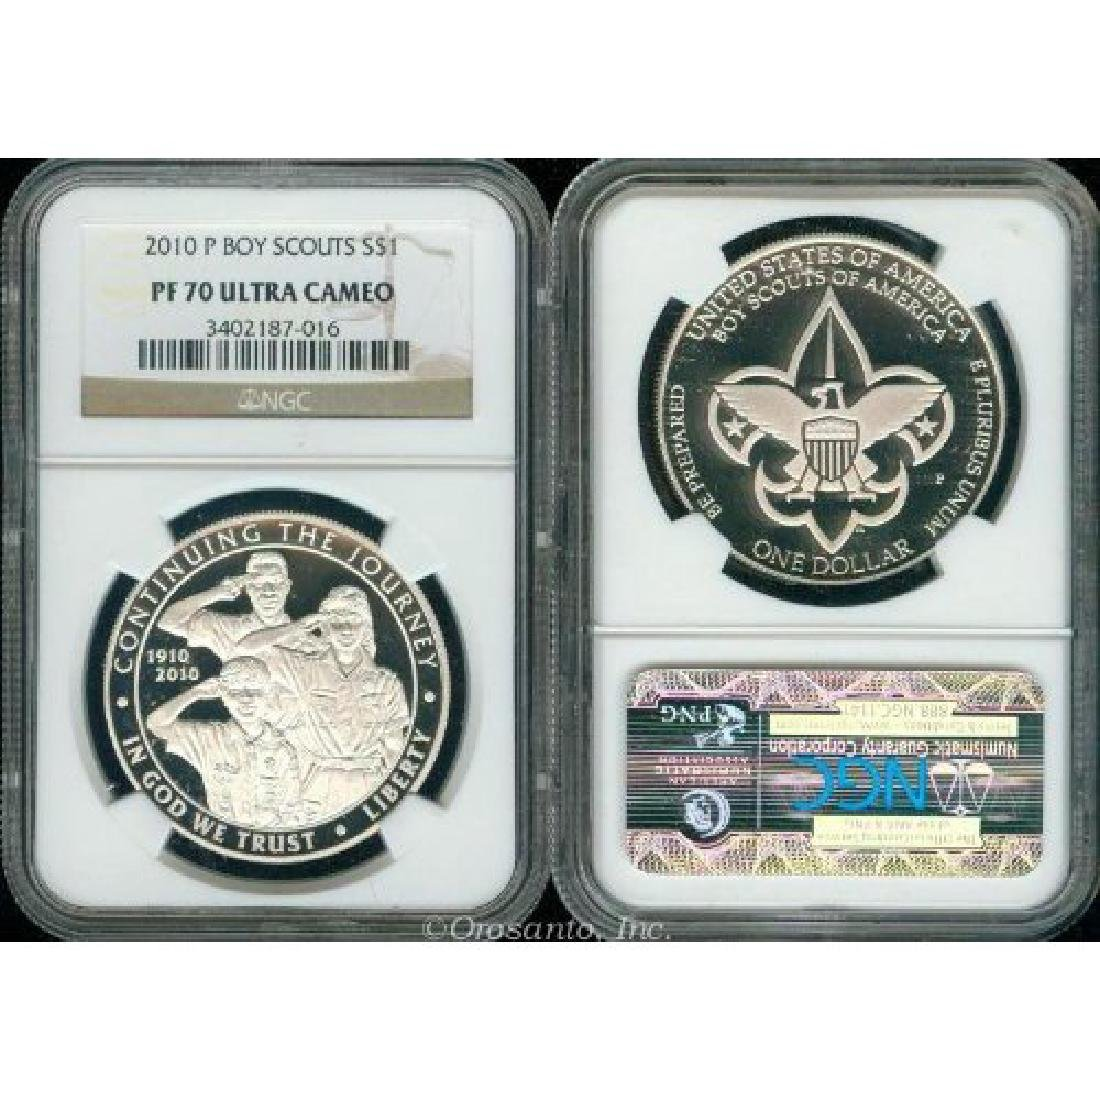 2010 Boy Scouts Of America Proof Silver Dollar NGC